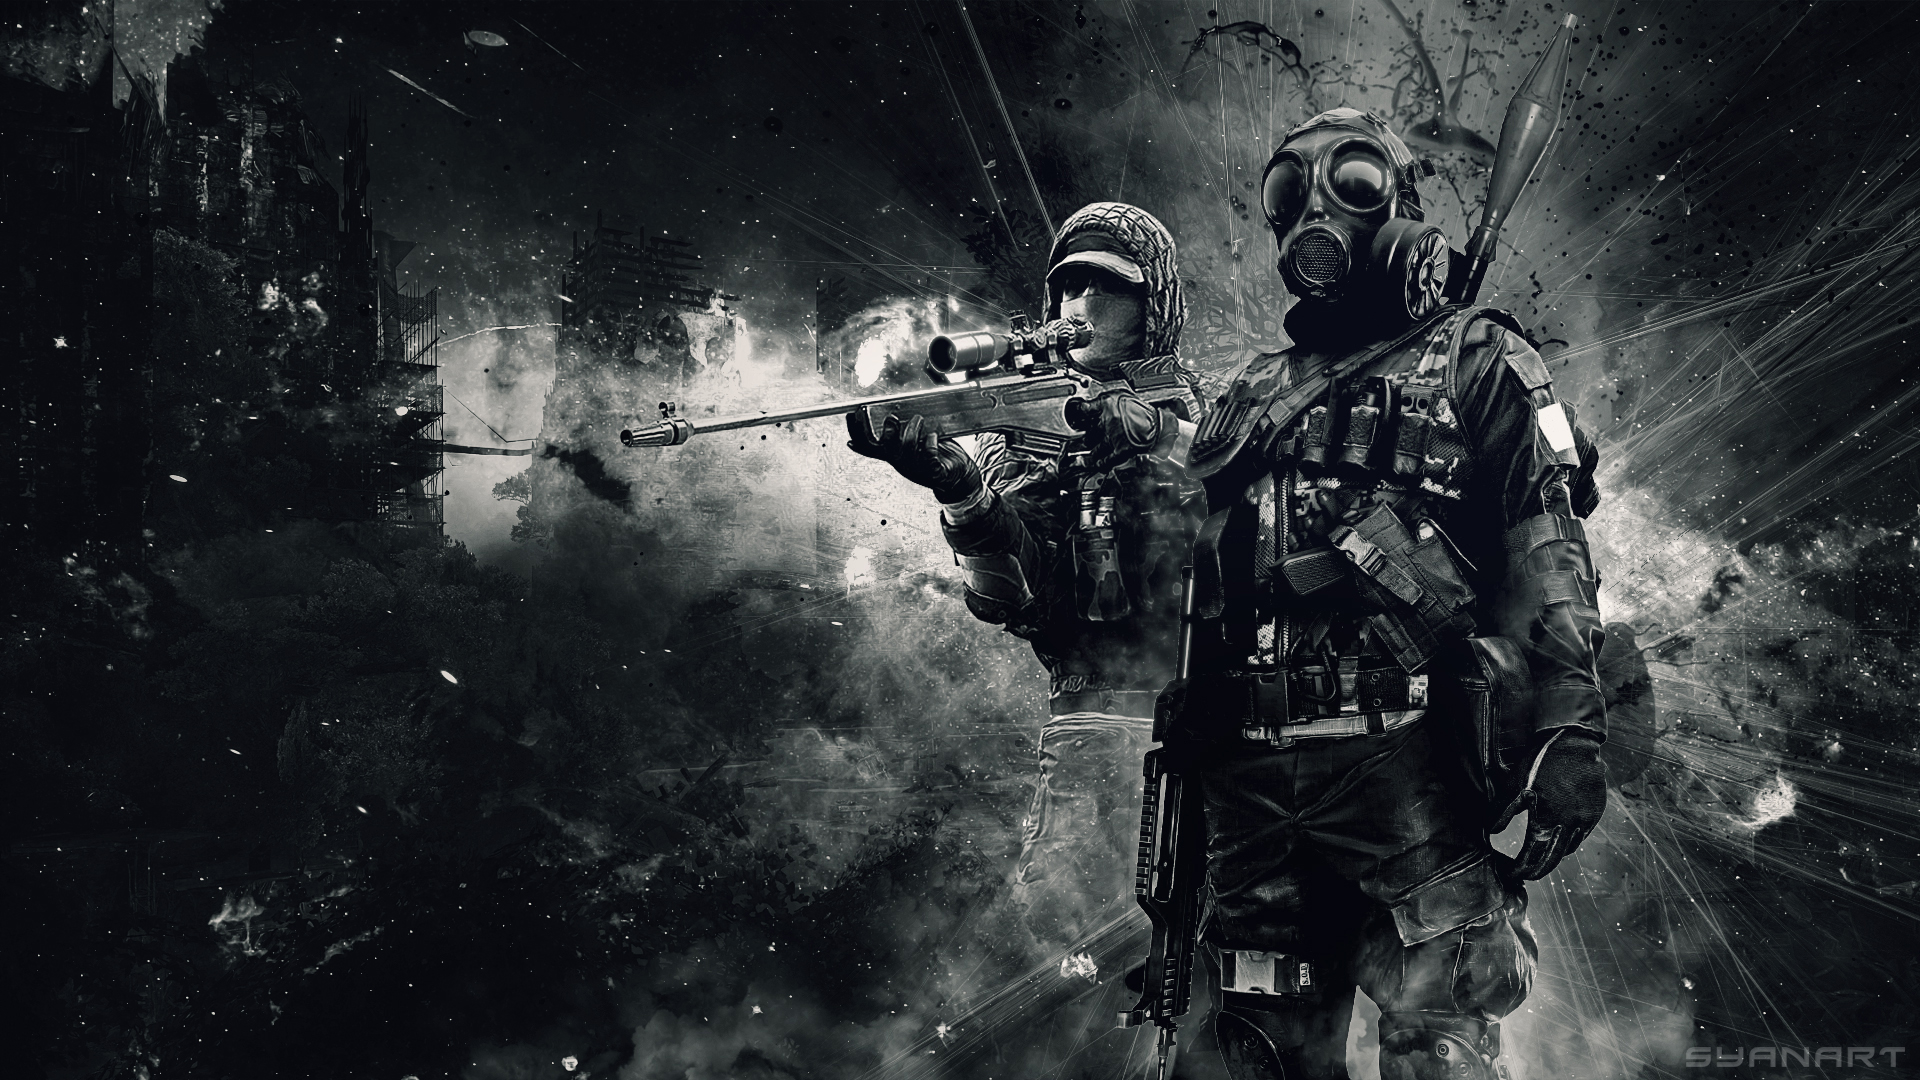 Battlefield 4 Spec Ops HD Wallpaper SyanArt Station 1920x1080